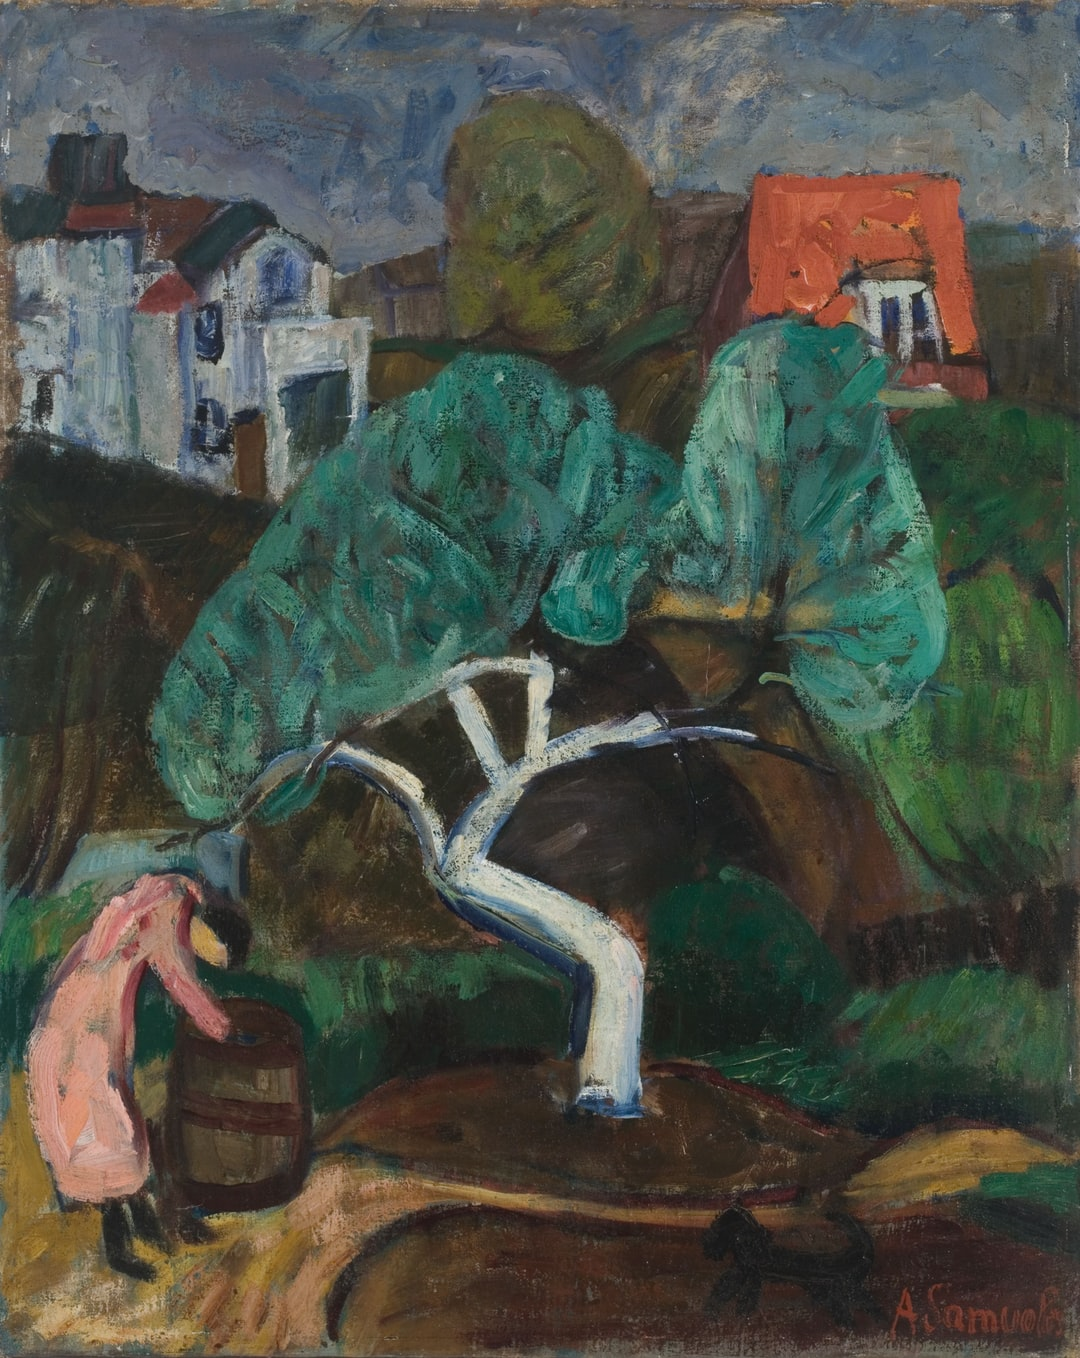 """The White Apple Tree by Antanas Samuolis. """"The White Apple Tree"""" by Expressionist painter Antanas Samuolis occupies a special place in the history of Lithuanian fine arts, as one of the most powerful pieces in the landscape genre.  Provided by Lithuanian Art Museum. PD for Public Domain Mark"""